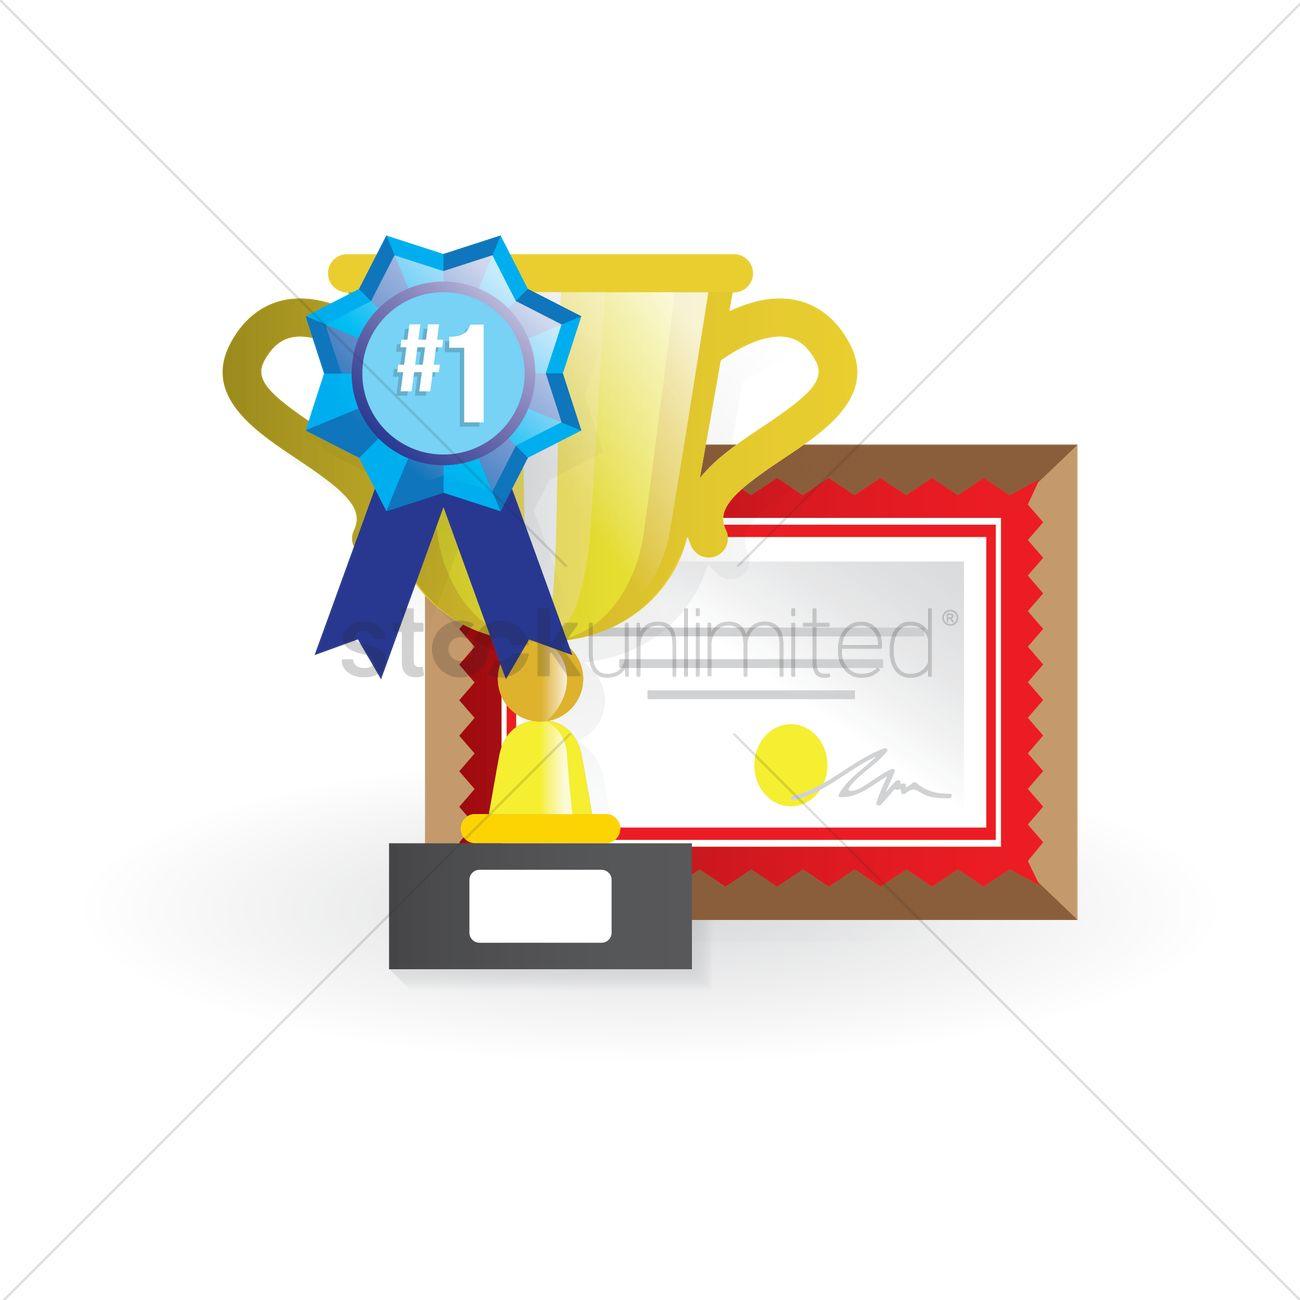 School award trophy and certificate Vector Image.